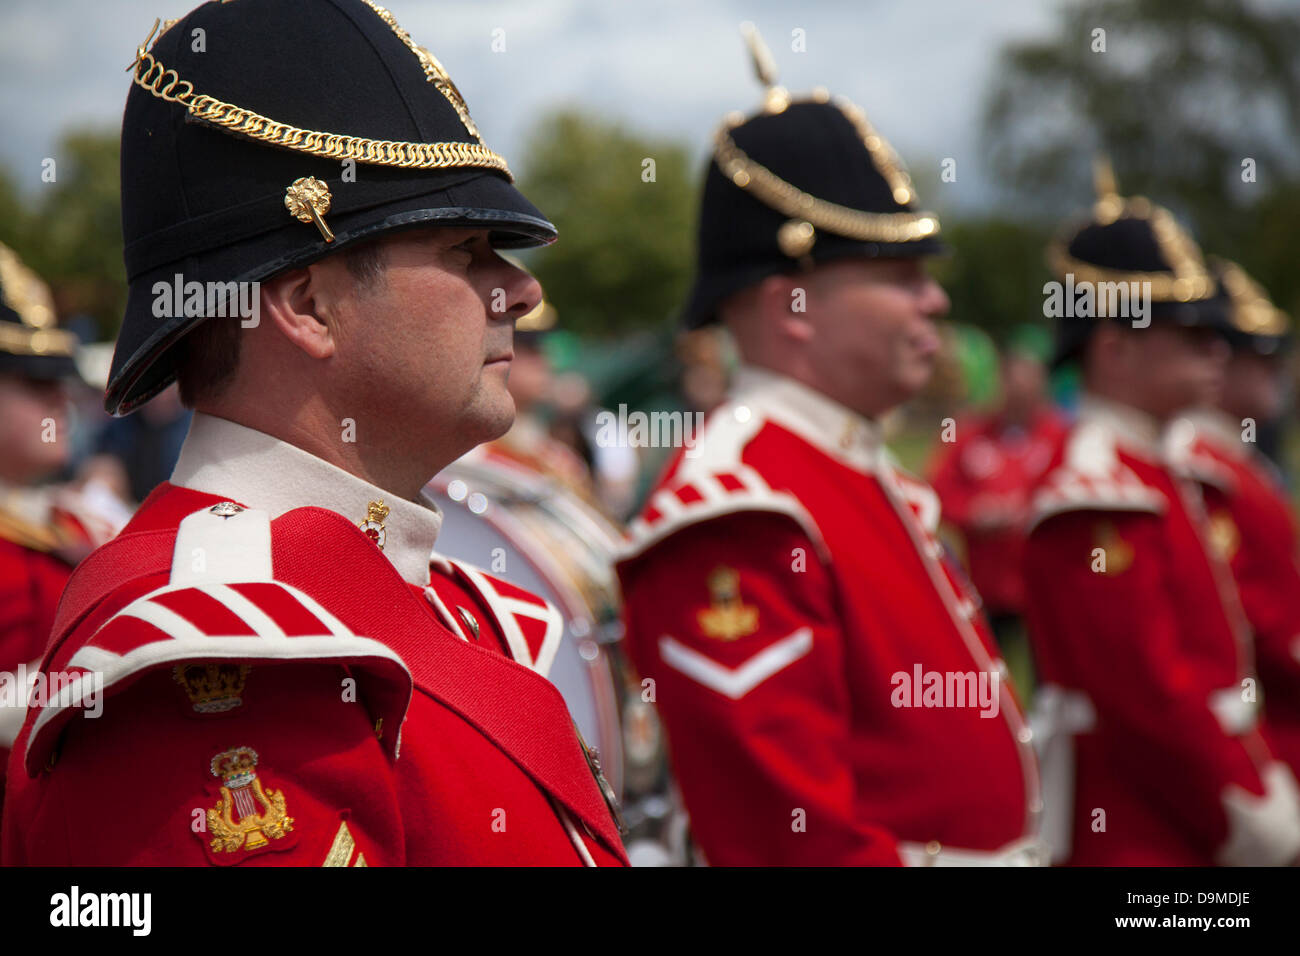 Preston UK, 22 June 2013. The Band of The King's Division based at Weeton Barracks at the Preston Military Show Stock Photo